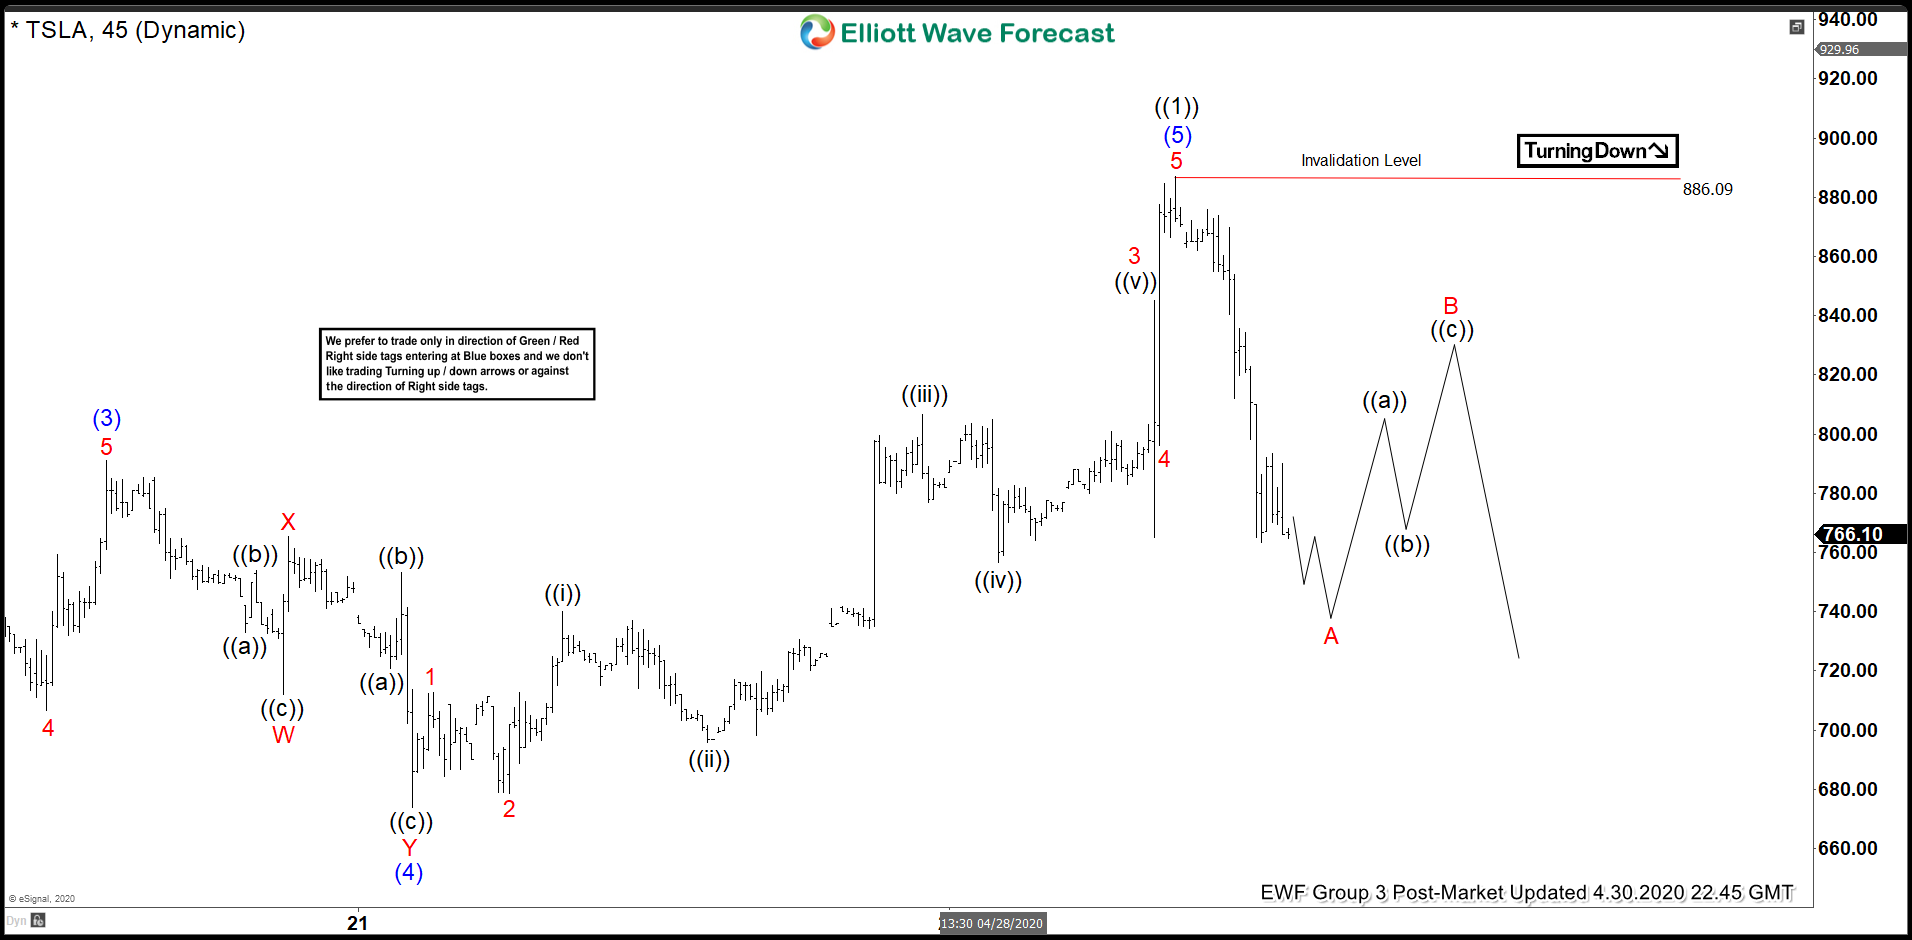 Elliott Wave View: Tesla (TSLA) Correcting Cycle from March Low